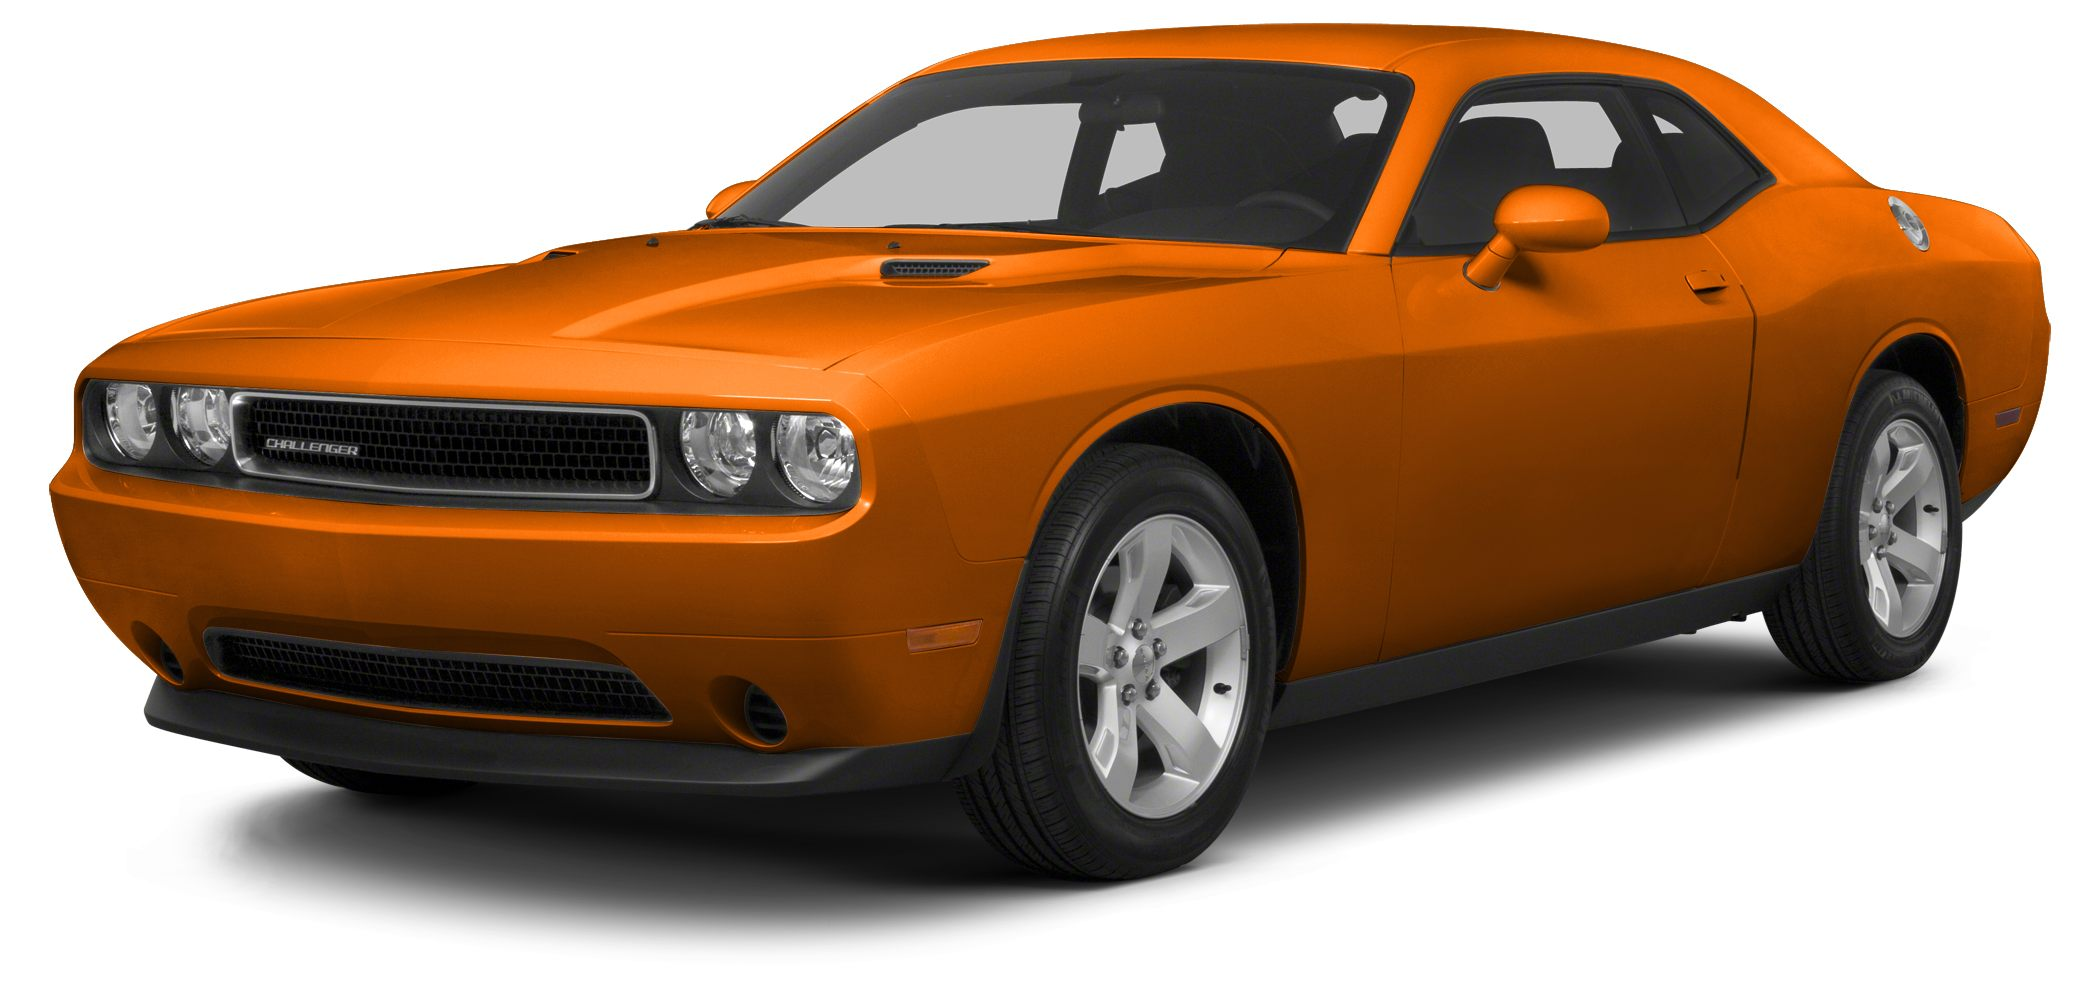 2012 Dodge Challenger SXT This Orange 2012 Dodge Challenger has a Clean CarFax and is ready to get